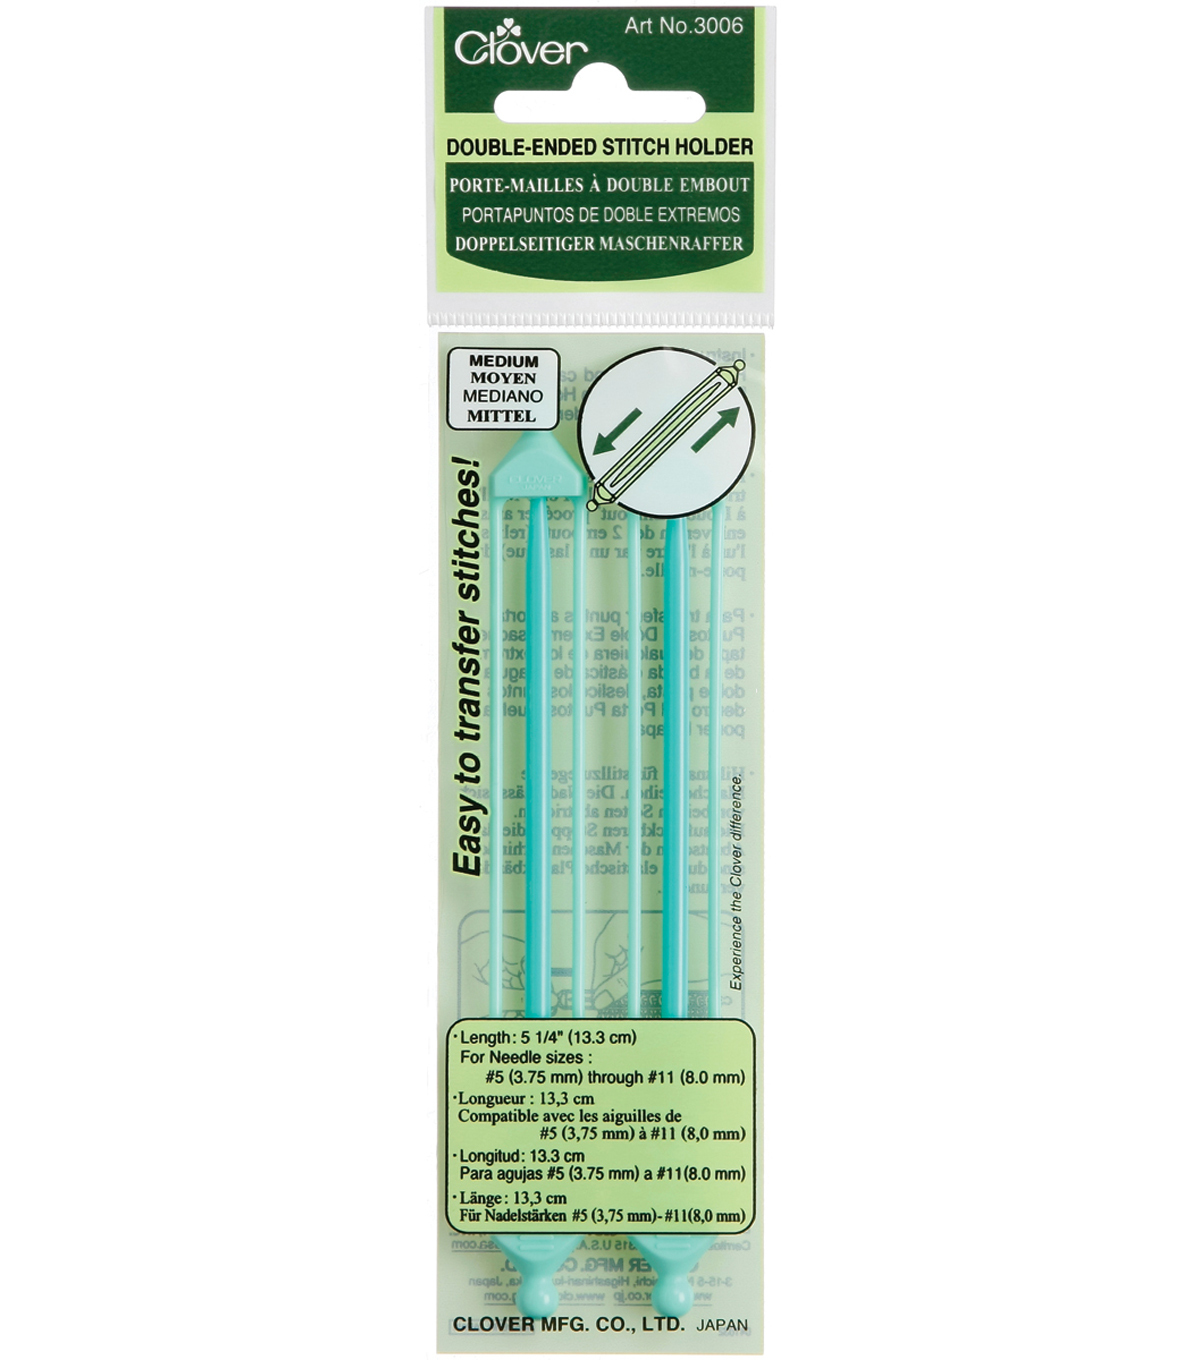 Clover Double Ended Stitch Holder Medium-2PK